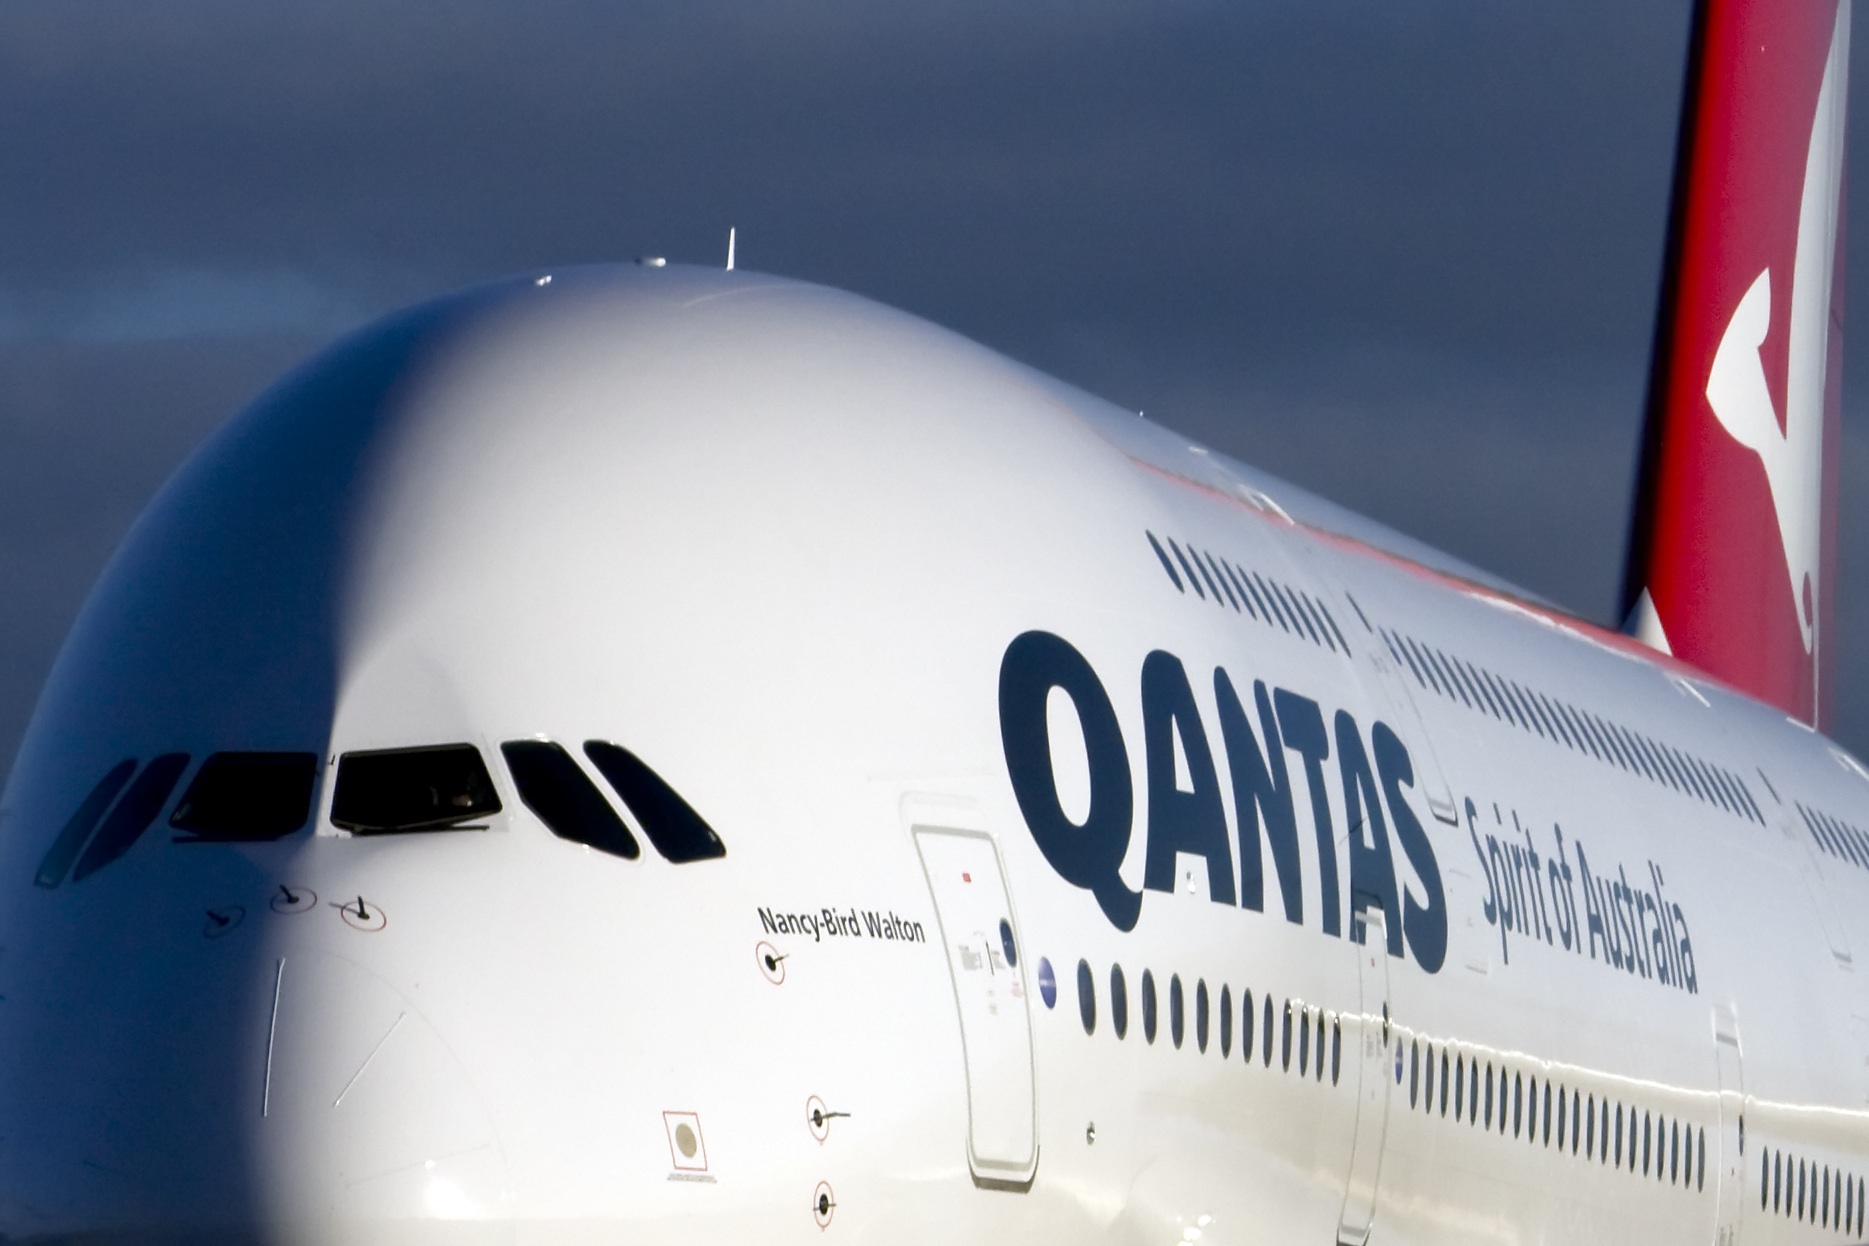 qantas_a380_20081014_06f par eosdude sous (CC BY-SA 2.0) https://www.flickr.com/photos/deangawler/2940840719/ https://creativecommons.org/licenses/by-sa/2.0/